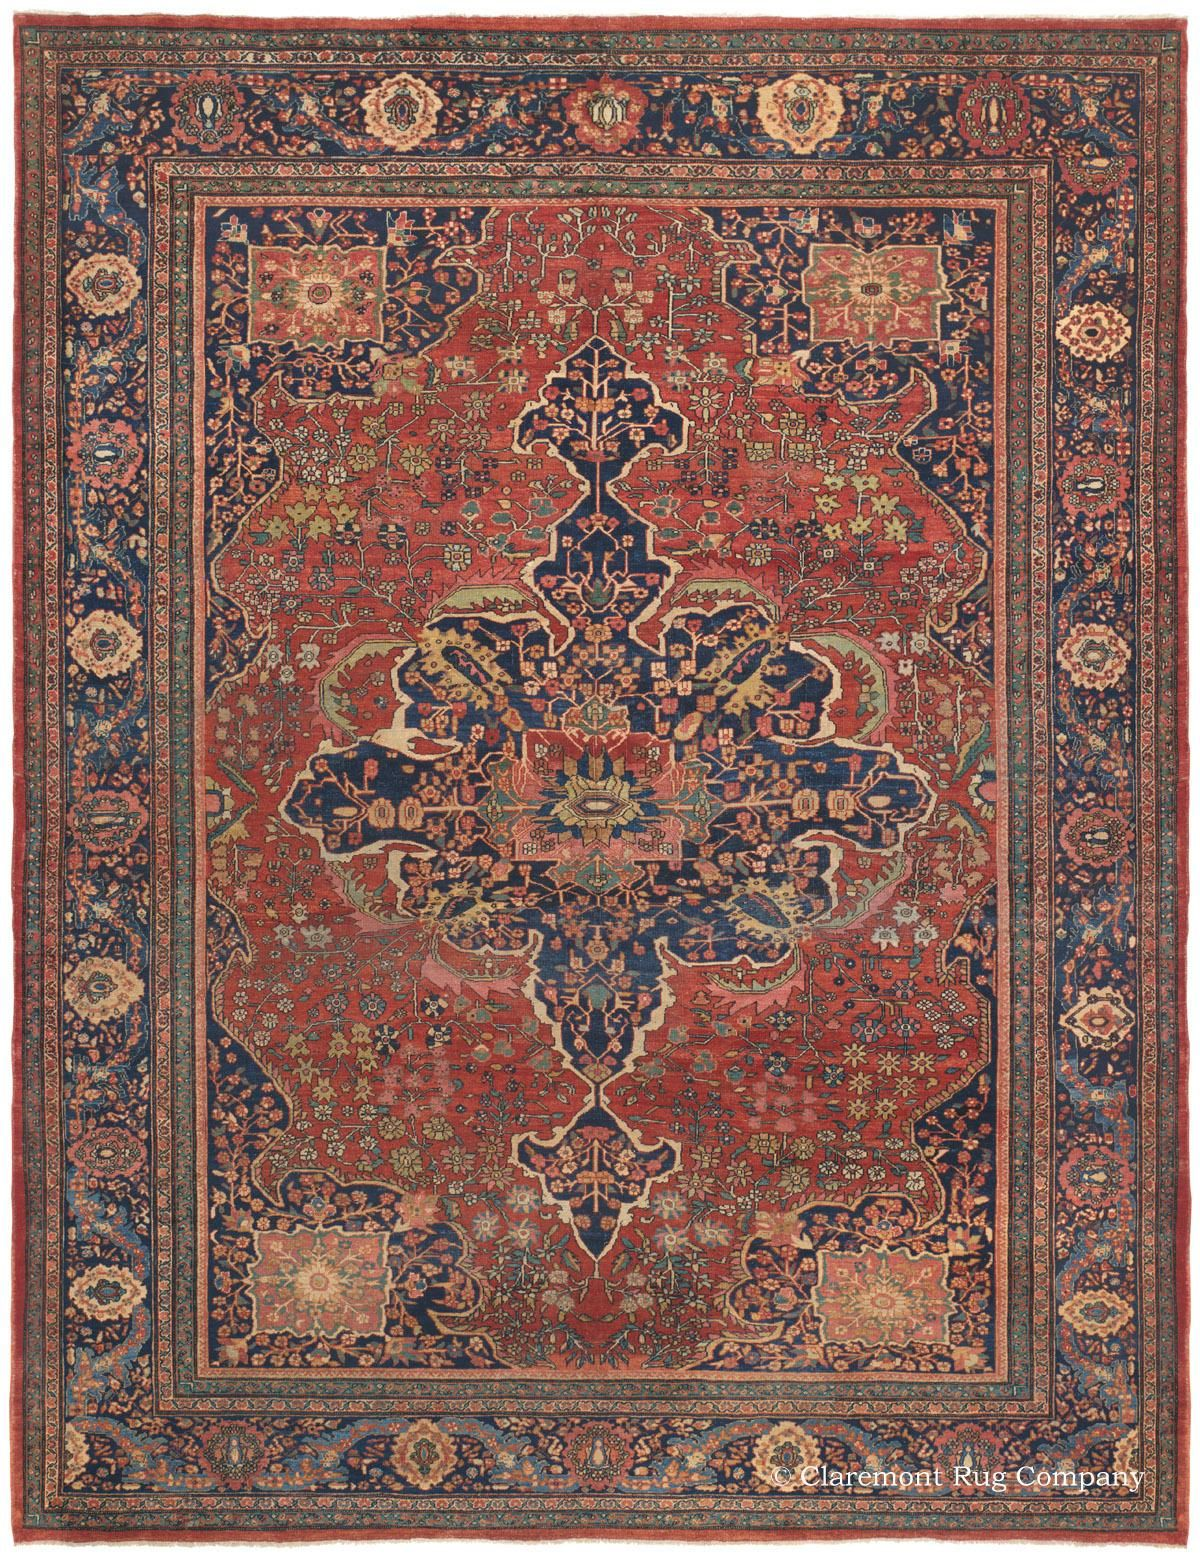 Etched Ferahan Sarouk Antique Oriental Carpet Rugs Antique Rugs Claremont Rug Company